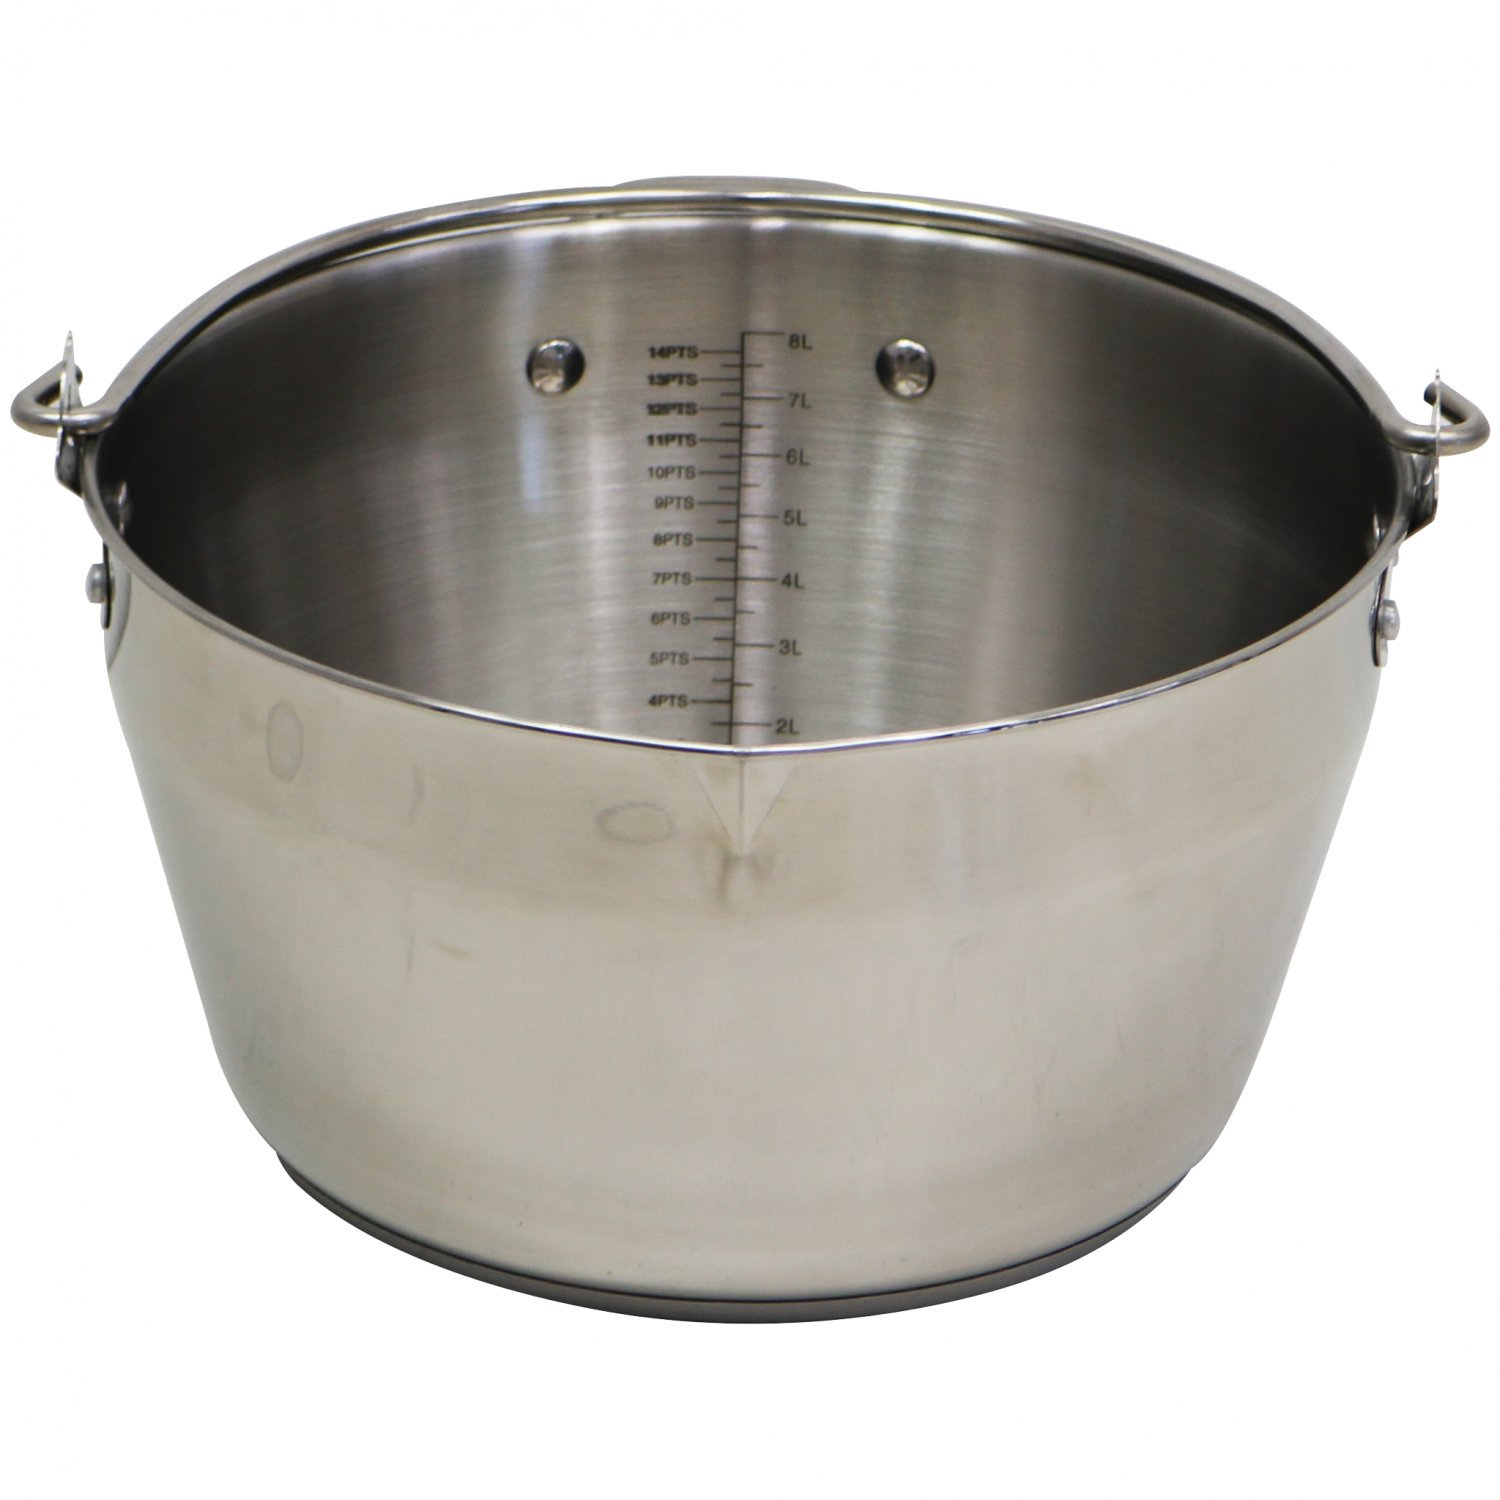 9L Stainless Steel Maslin Jam Preserving Pan with Handle